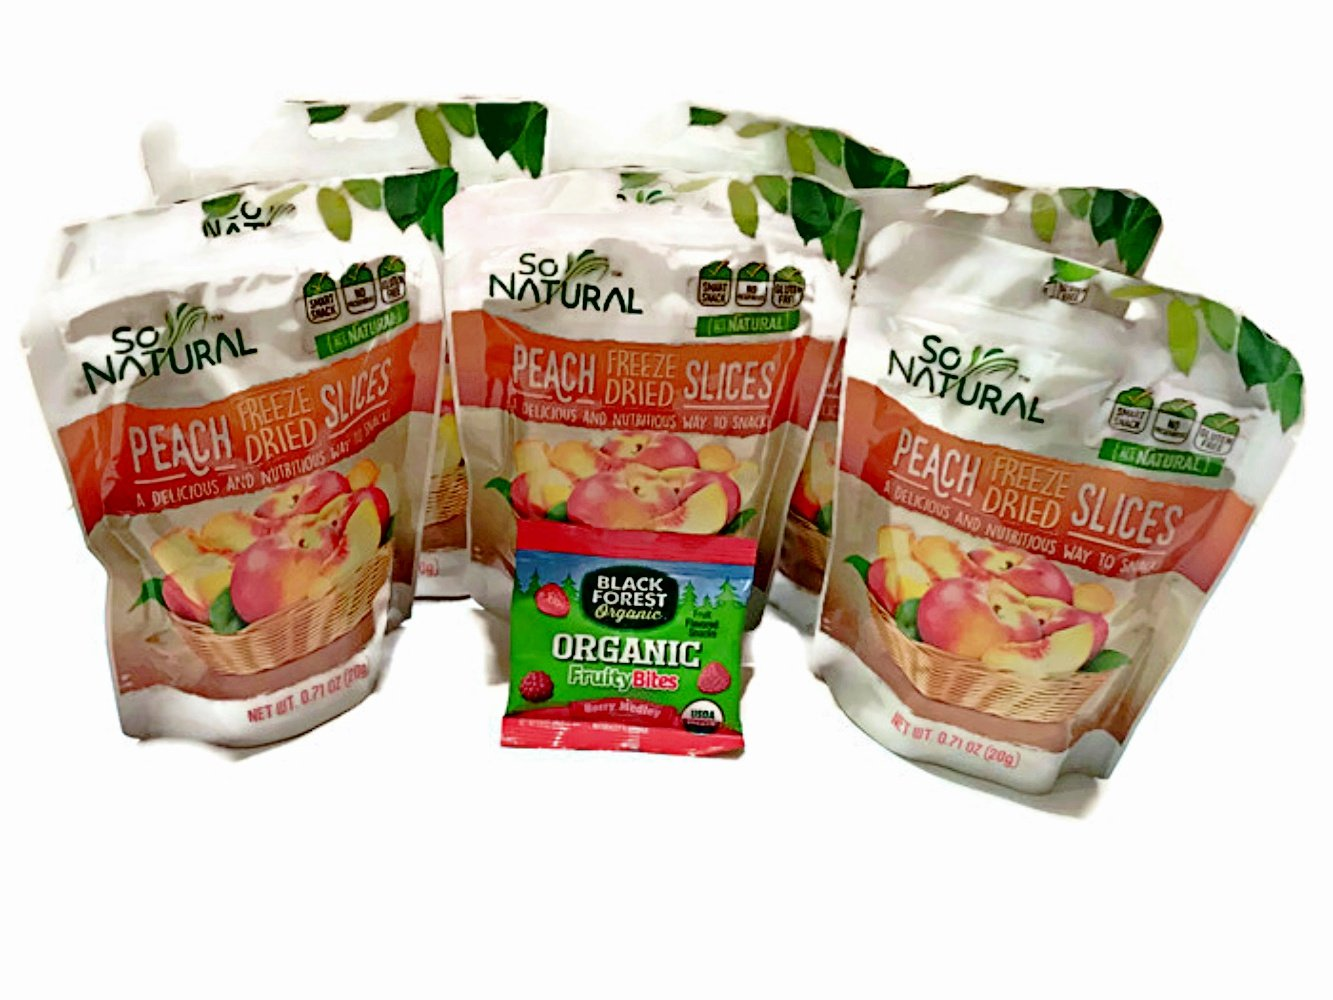 So Natural Freeze Dried Peaches 6 packages INCLUDES Organic Fruity Bites by So Natural